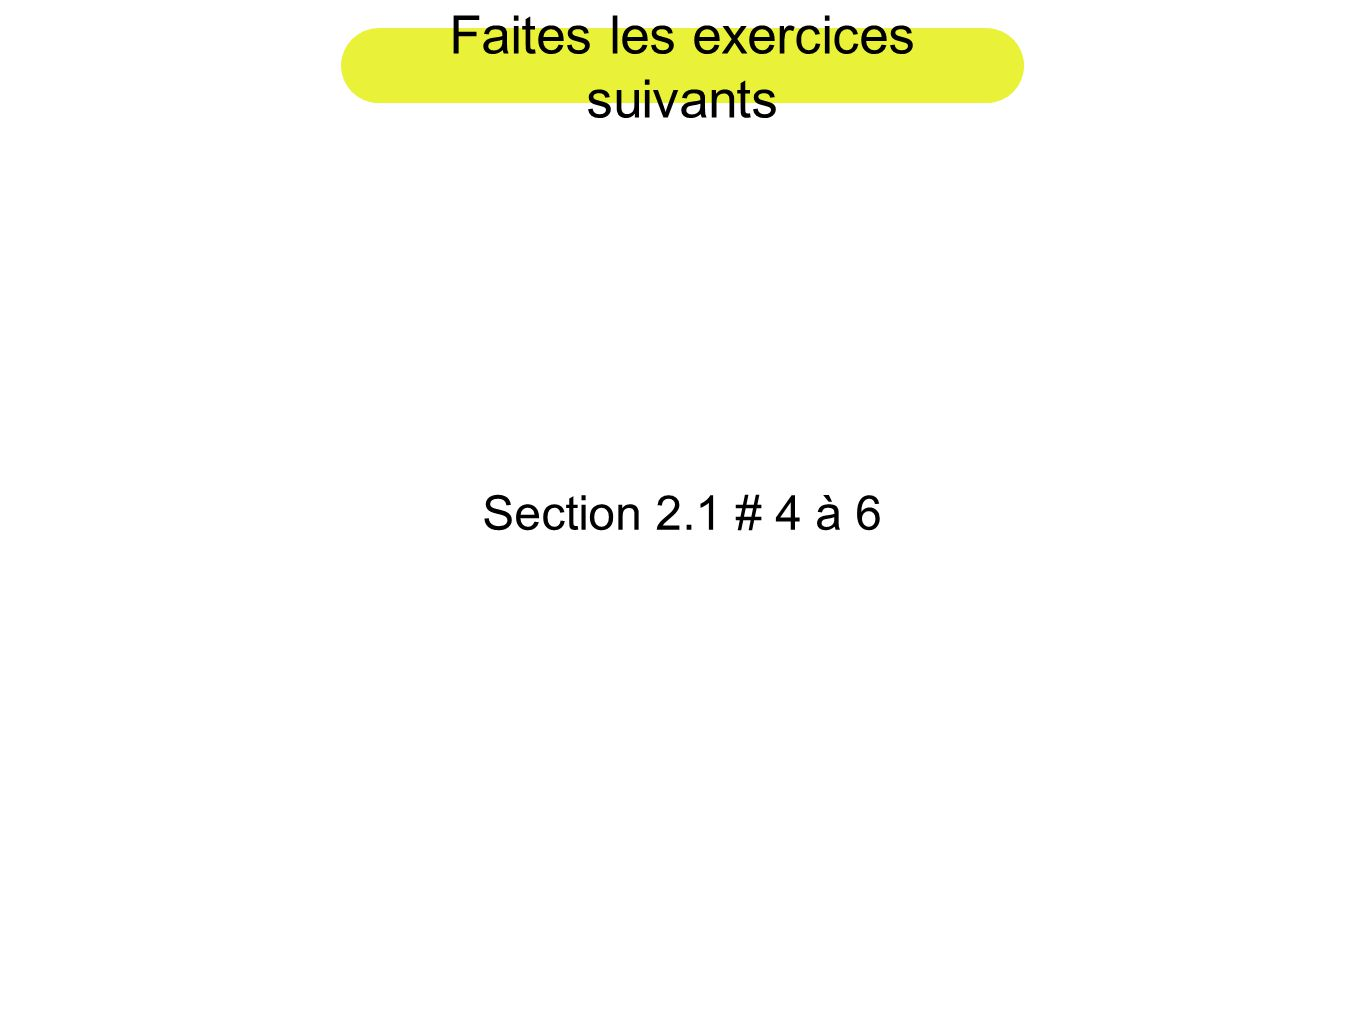 Faites les exercices suivants Section 2.1 # 4 à 6